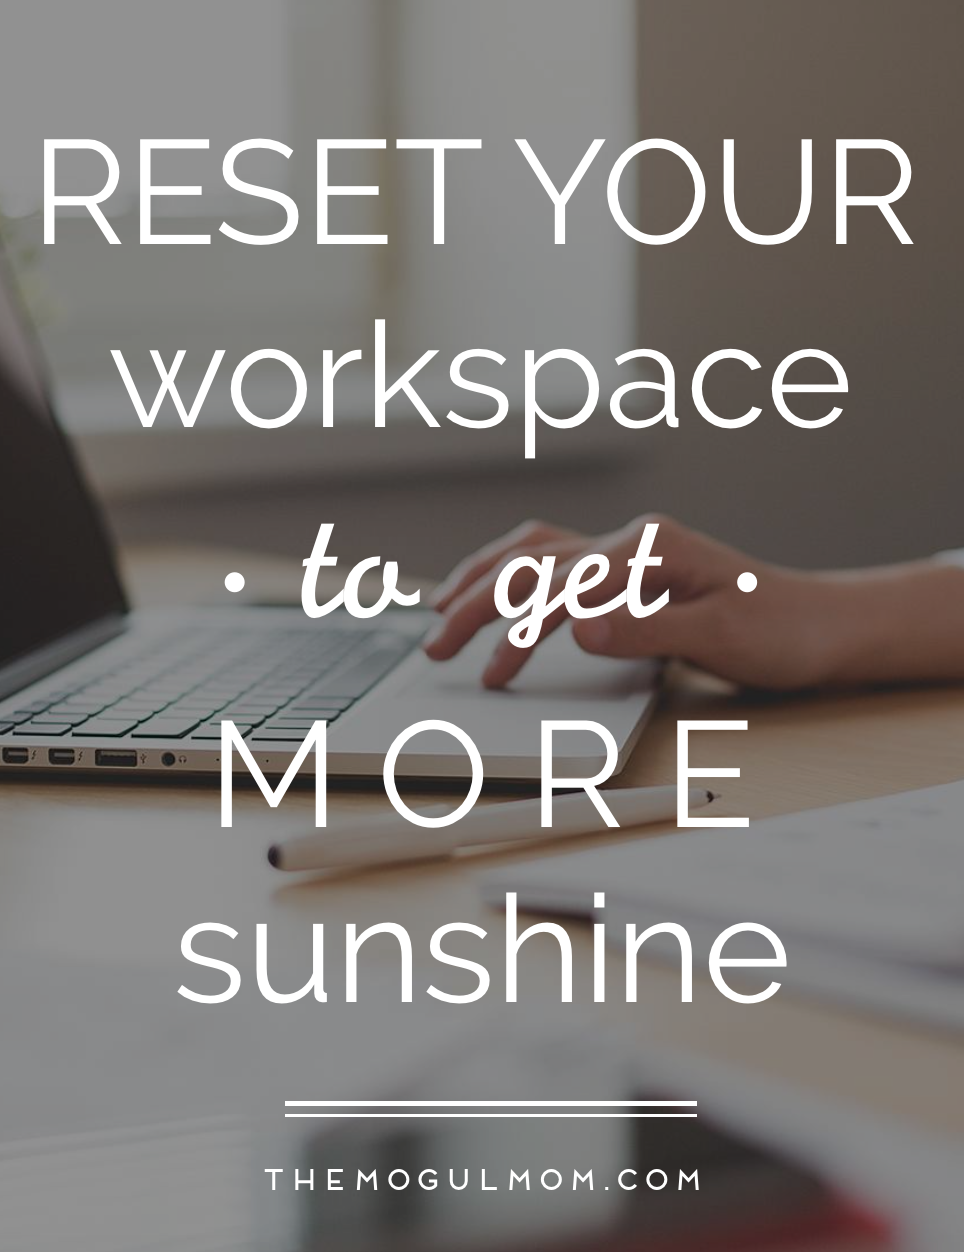 Reset Your Workspace to Get More Sunshine